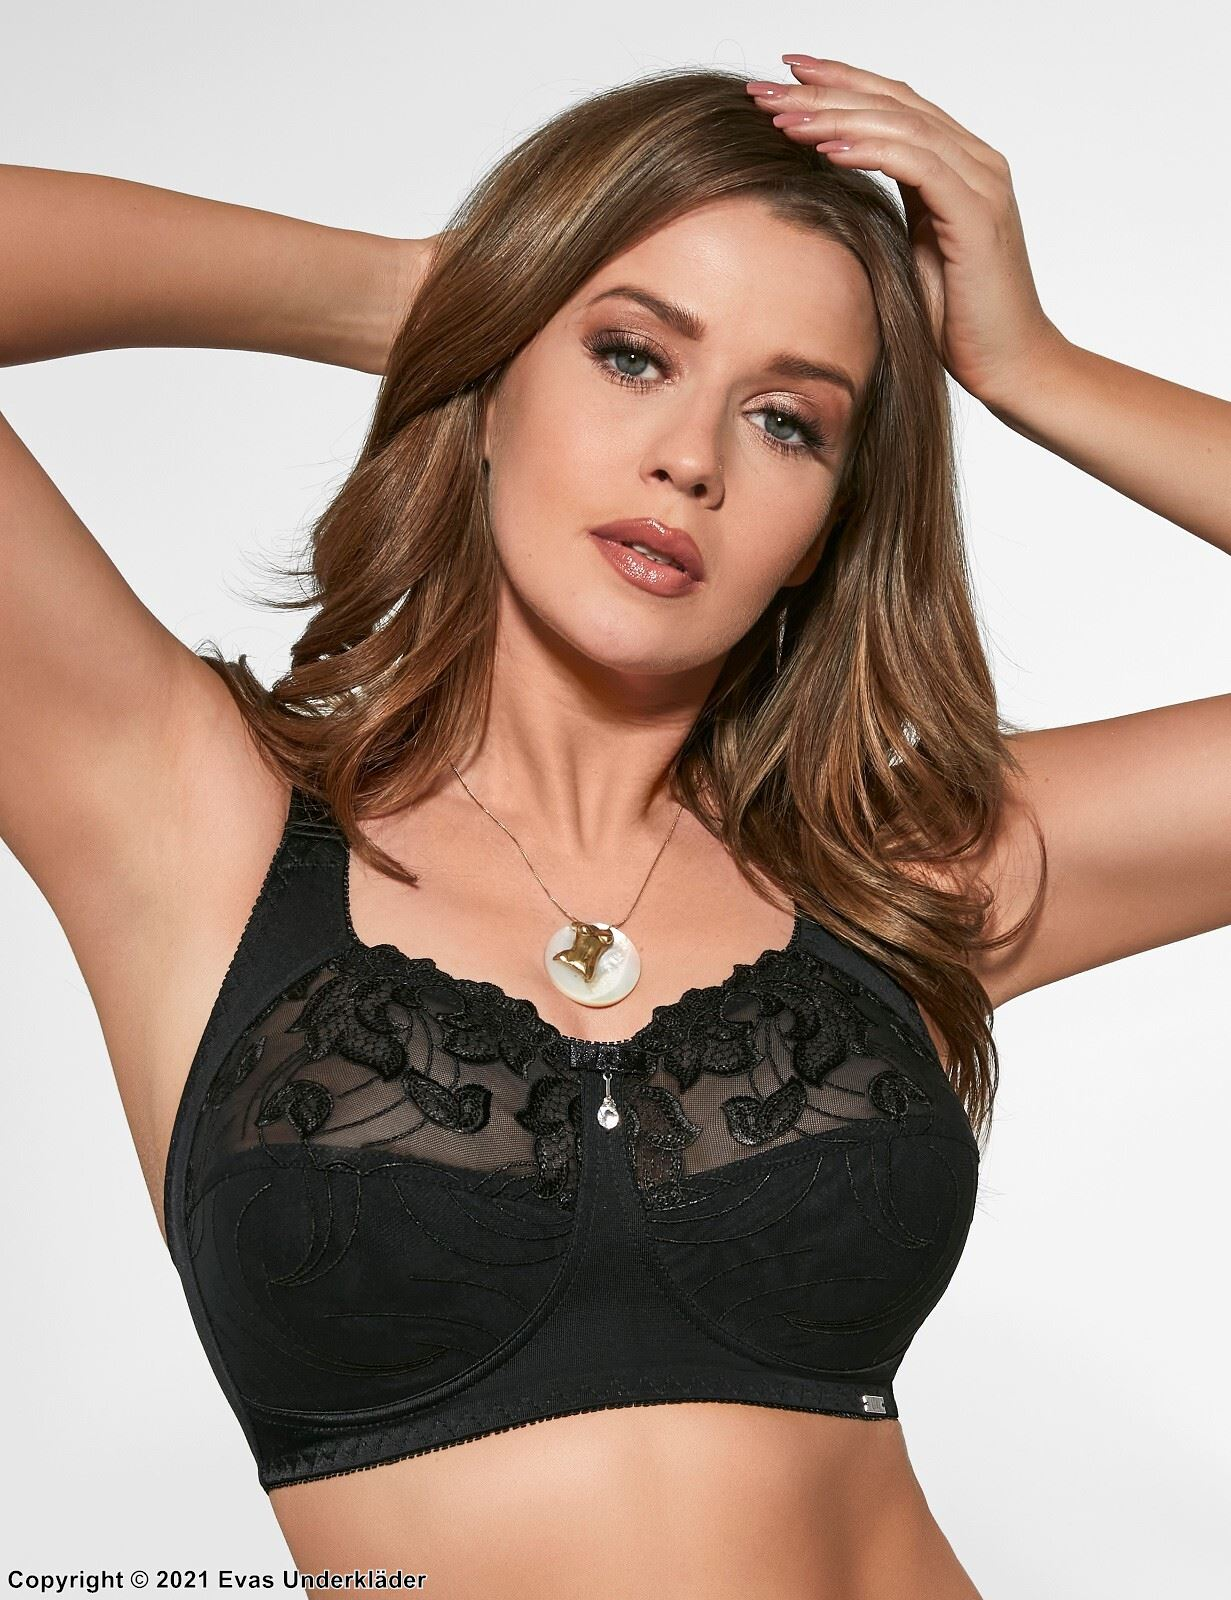 Comfortable full cup bra, mesh, wide shoulder straps, floral lace, B to I-cup